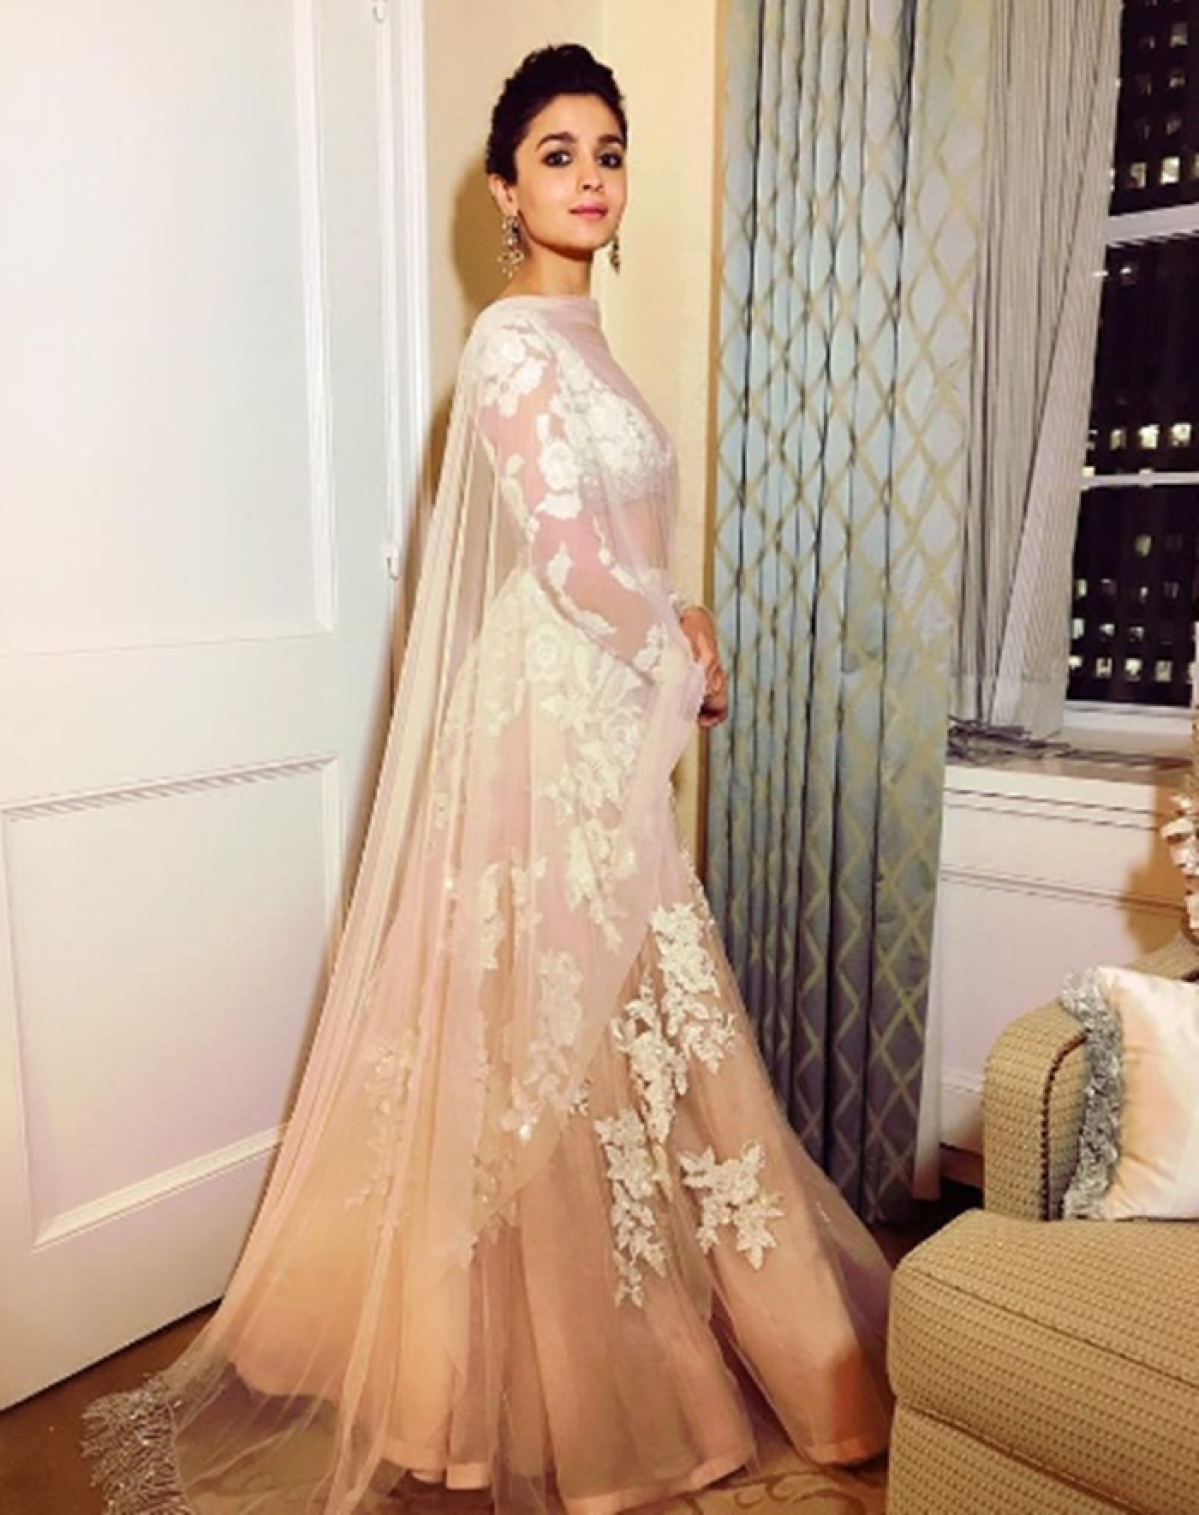 Being in New York for IIFA is like being at home: Alia Bhatt